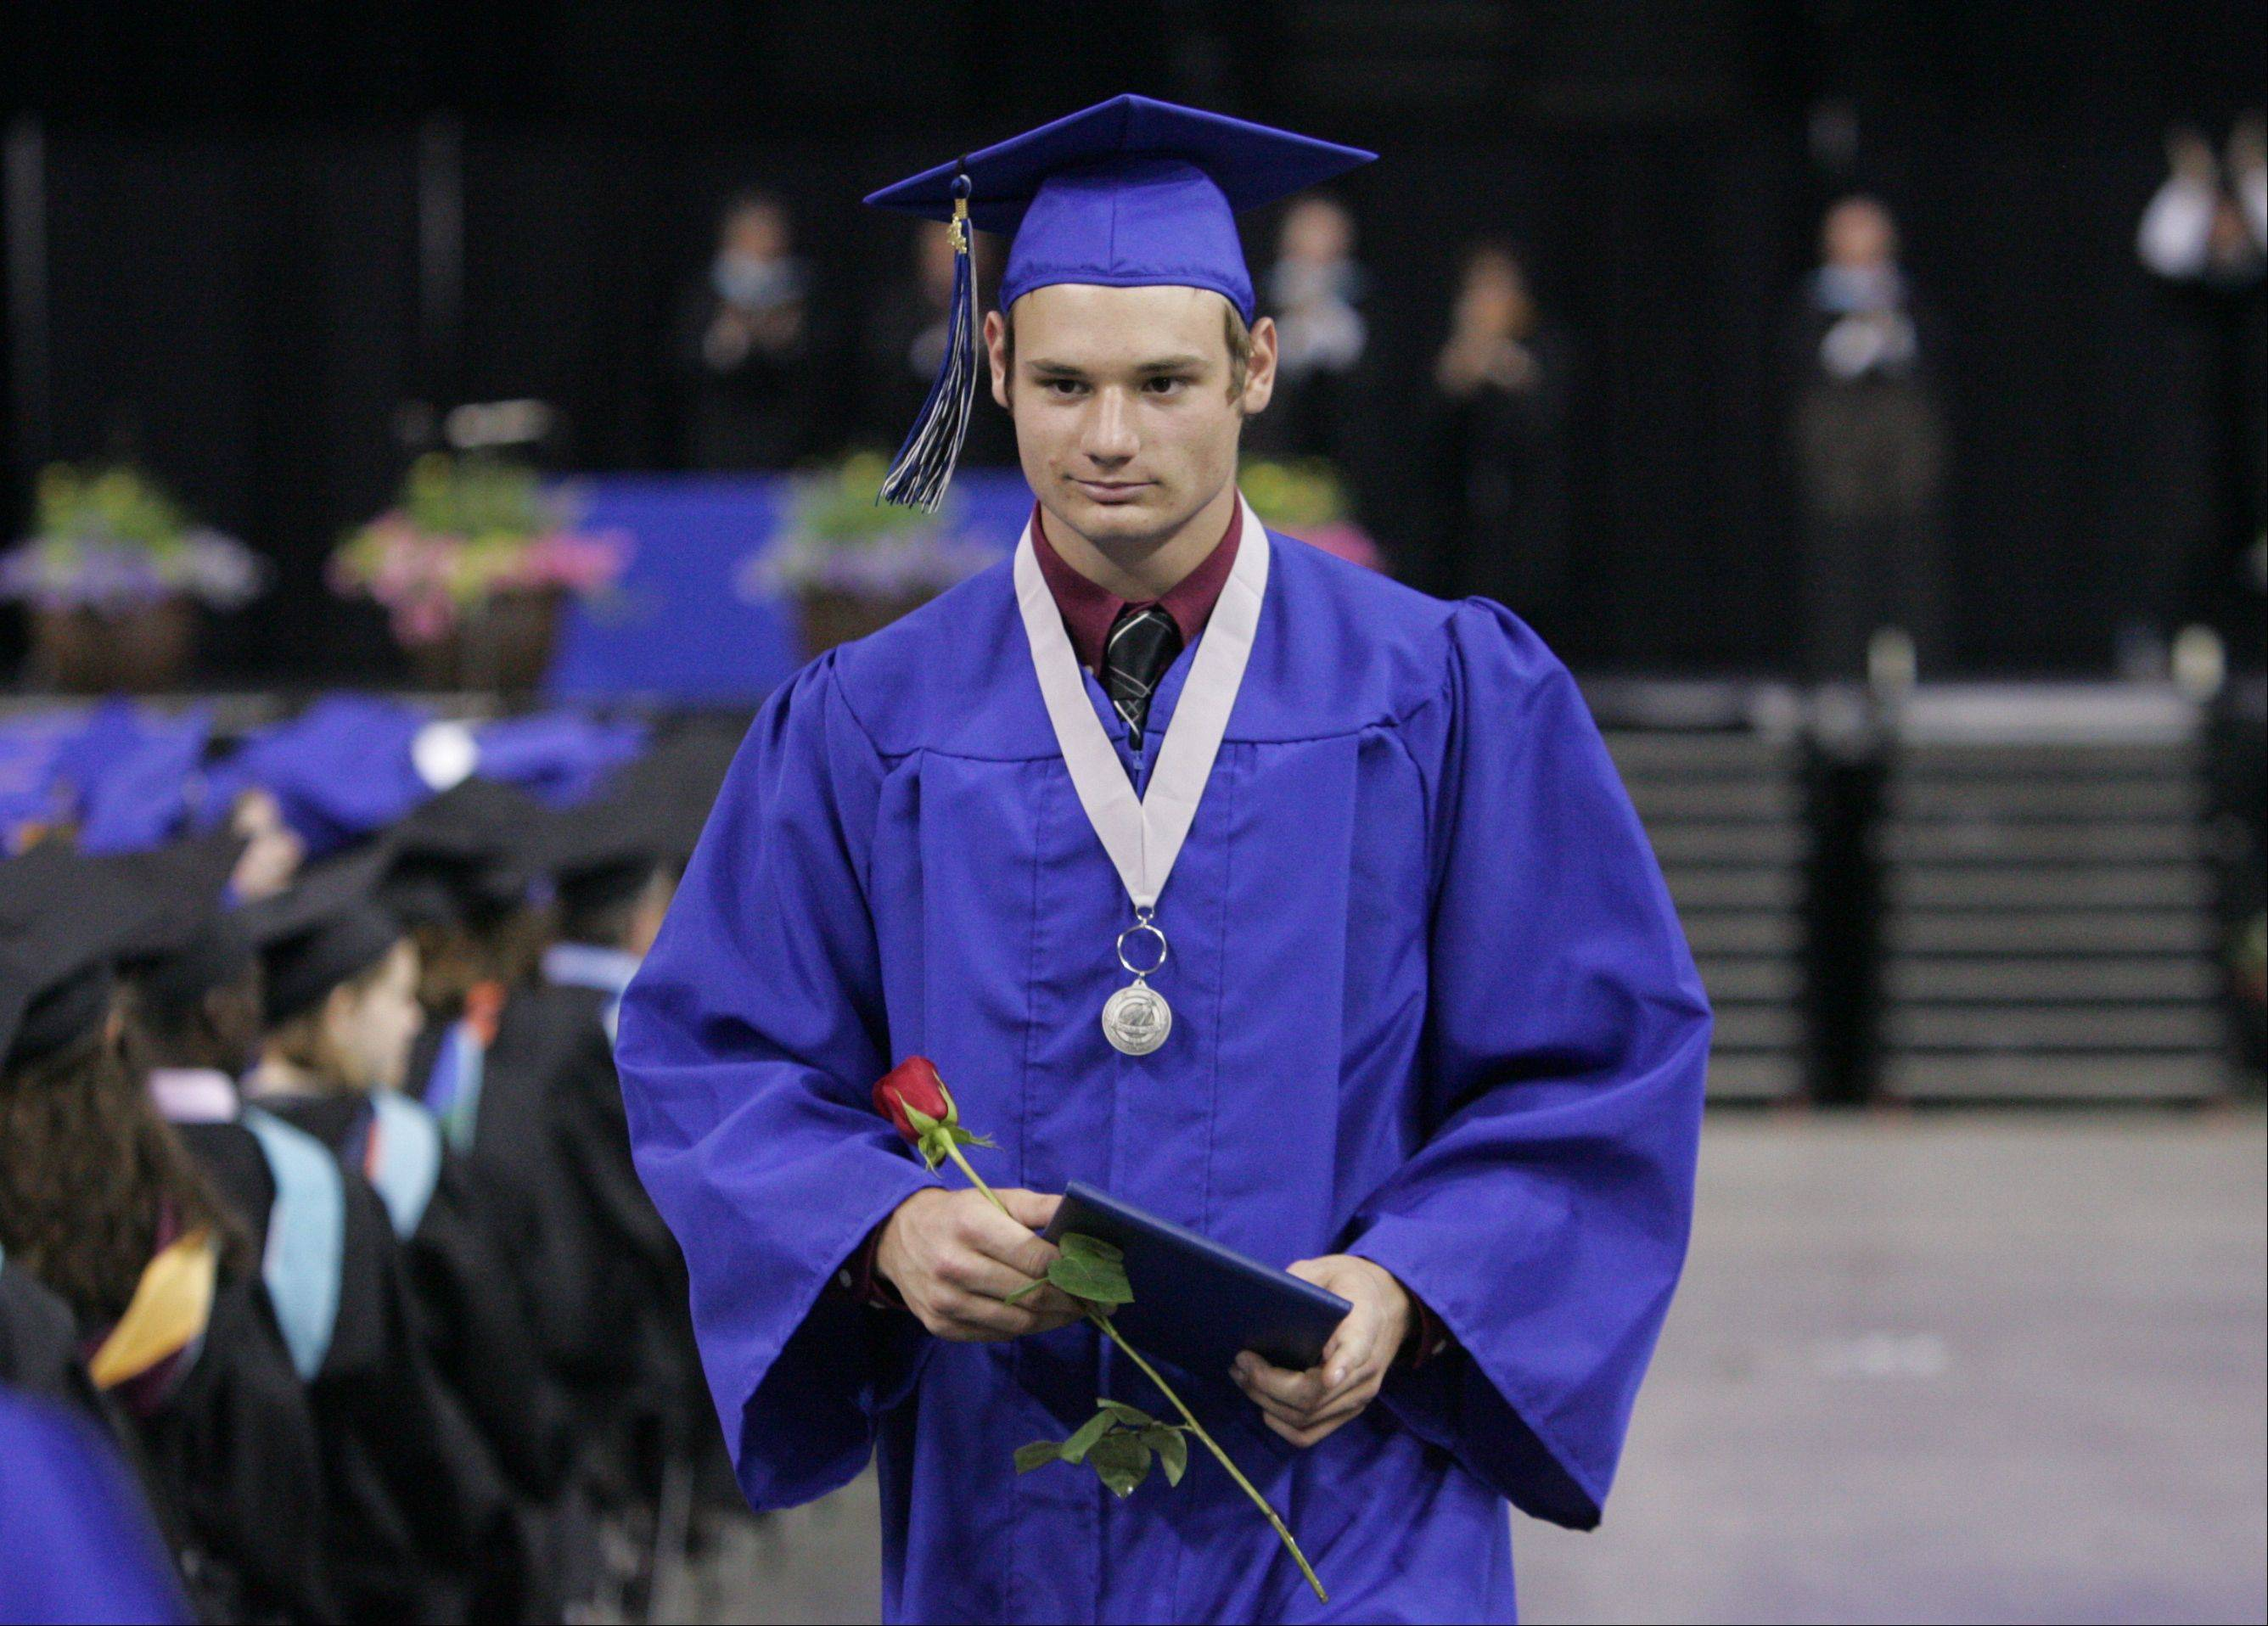 Images from the St. Charles North High School graduation ceremony Sunday, May 27, 2012 at the Sears Centre in Hoffman Estates.